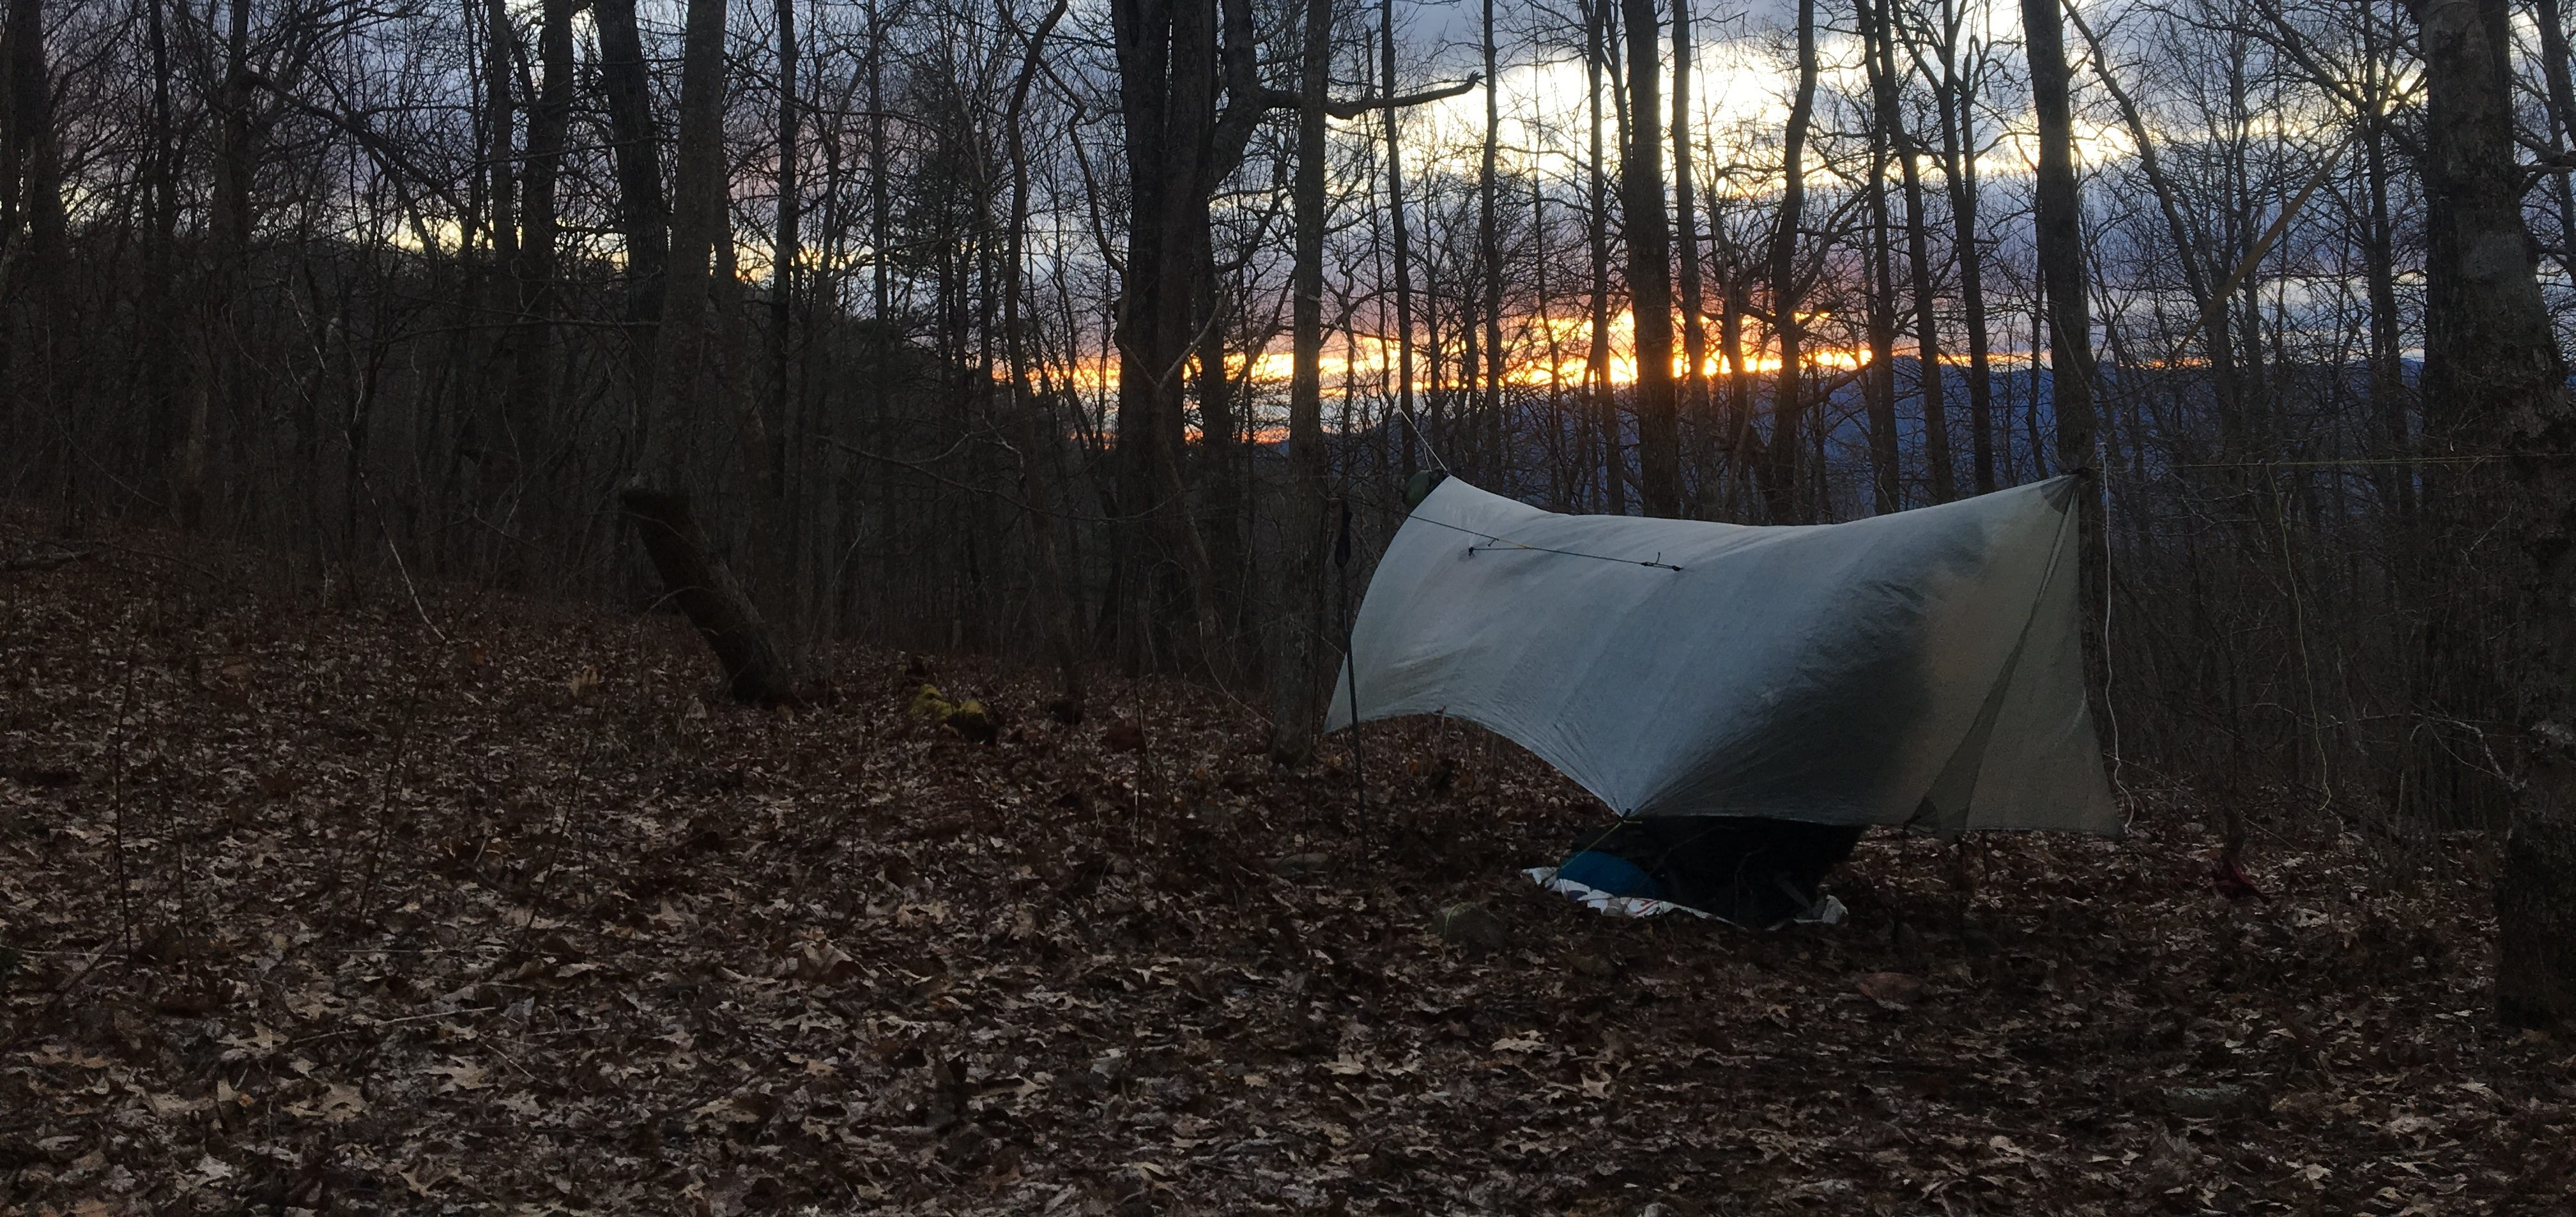 214be05273a 10 Tips for Better Hammock Camping - The Trek